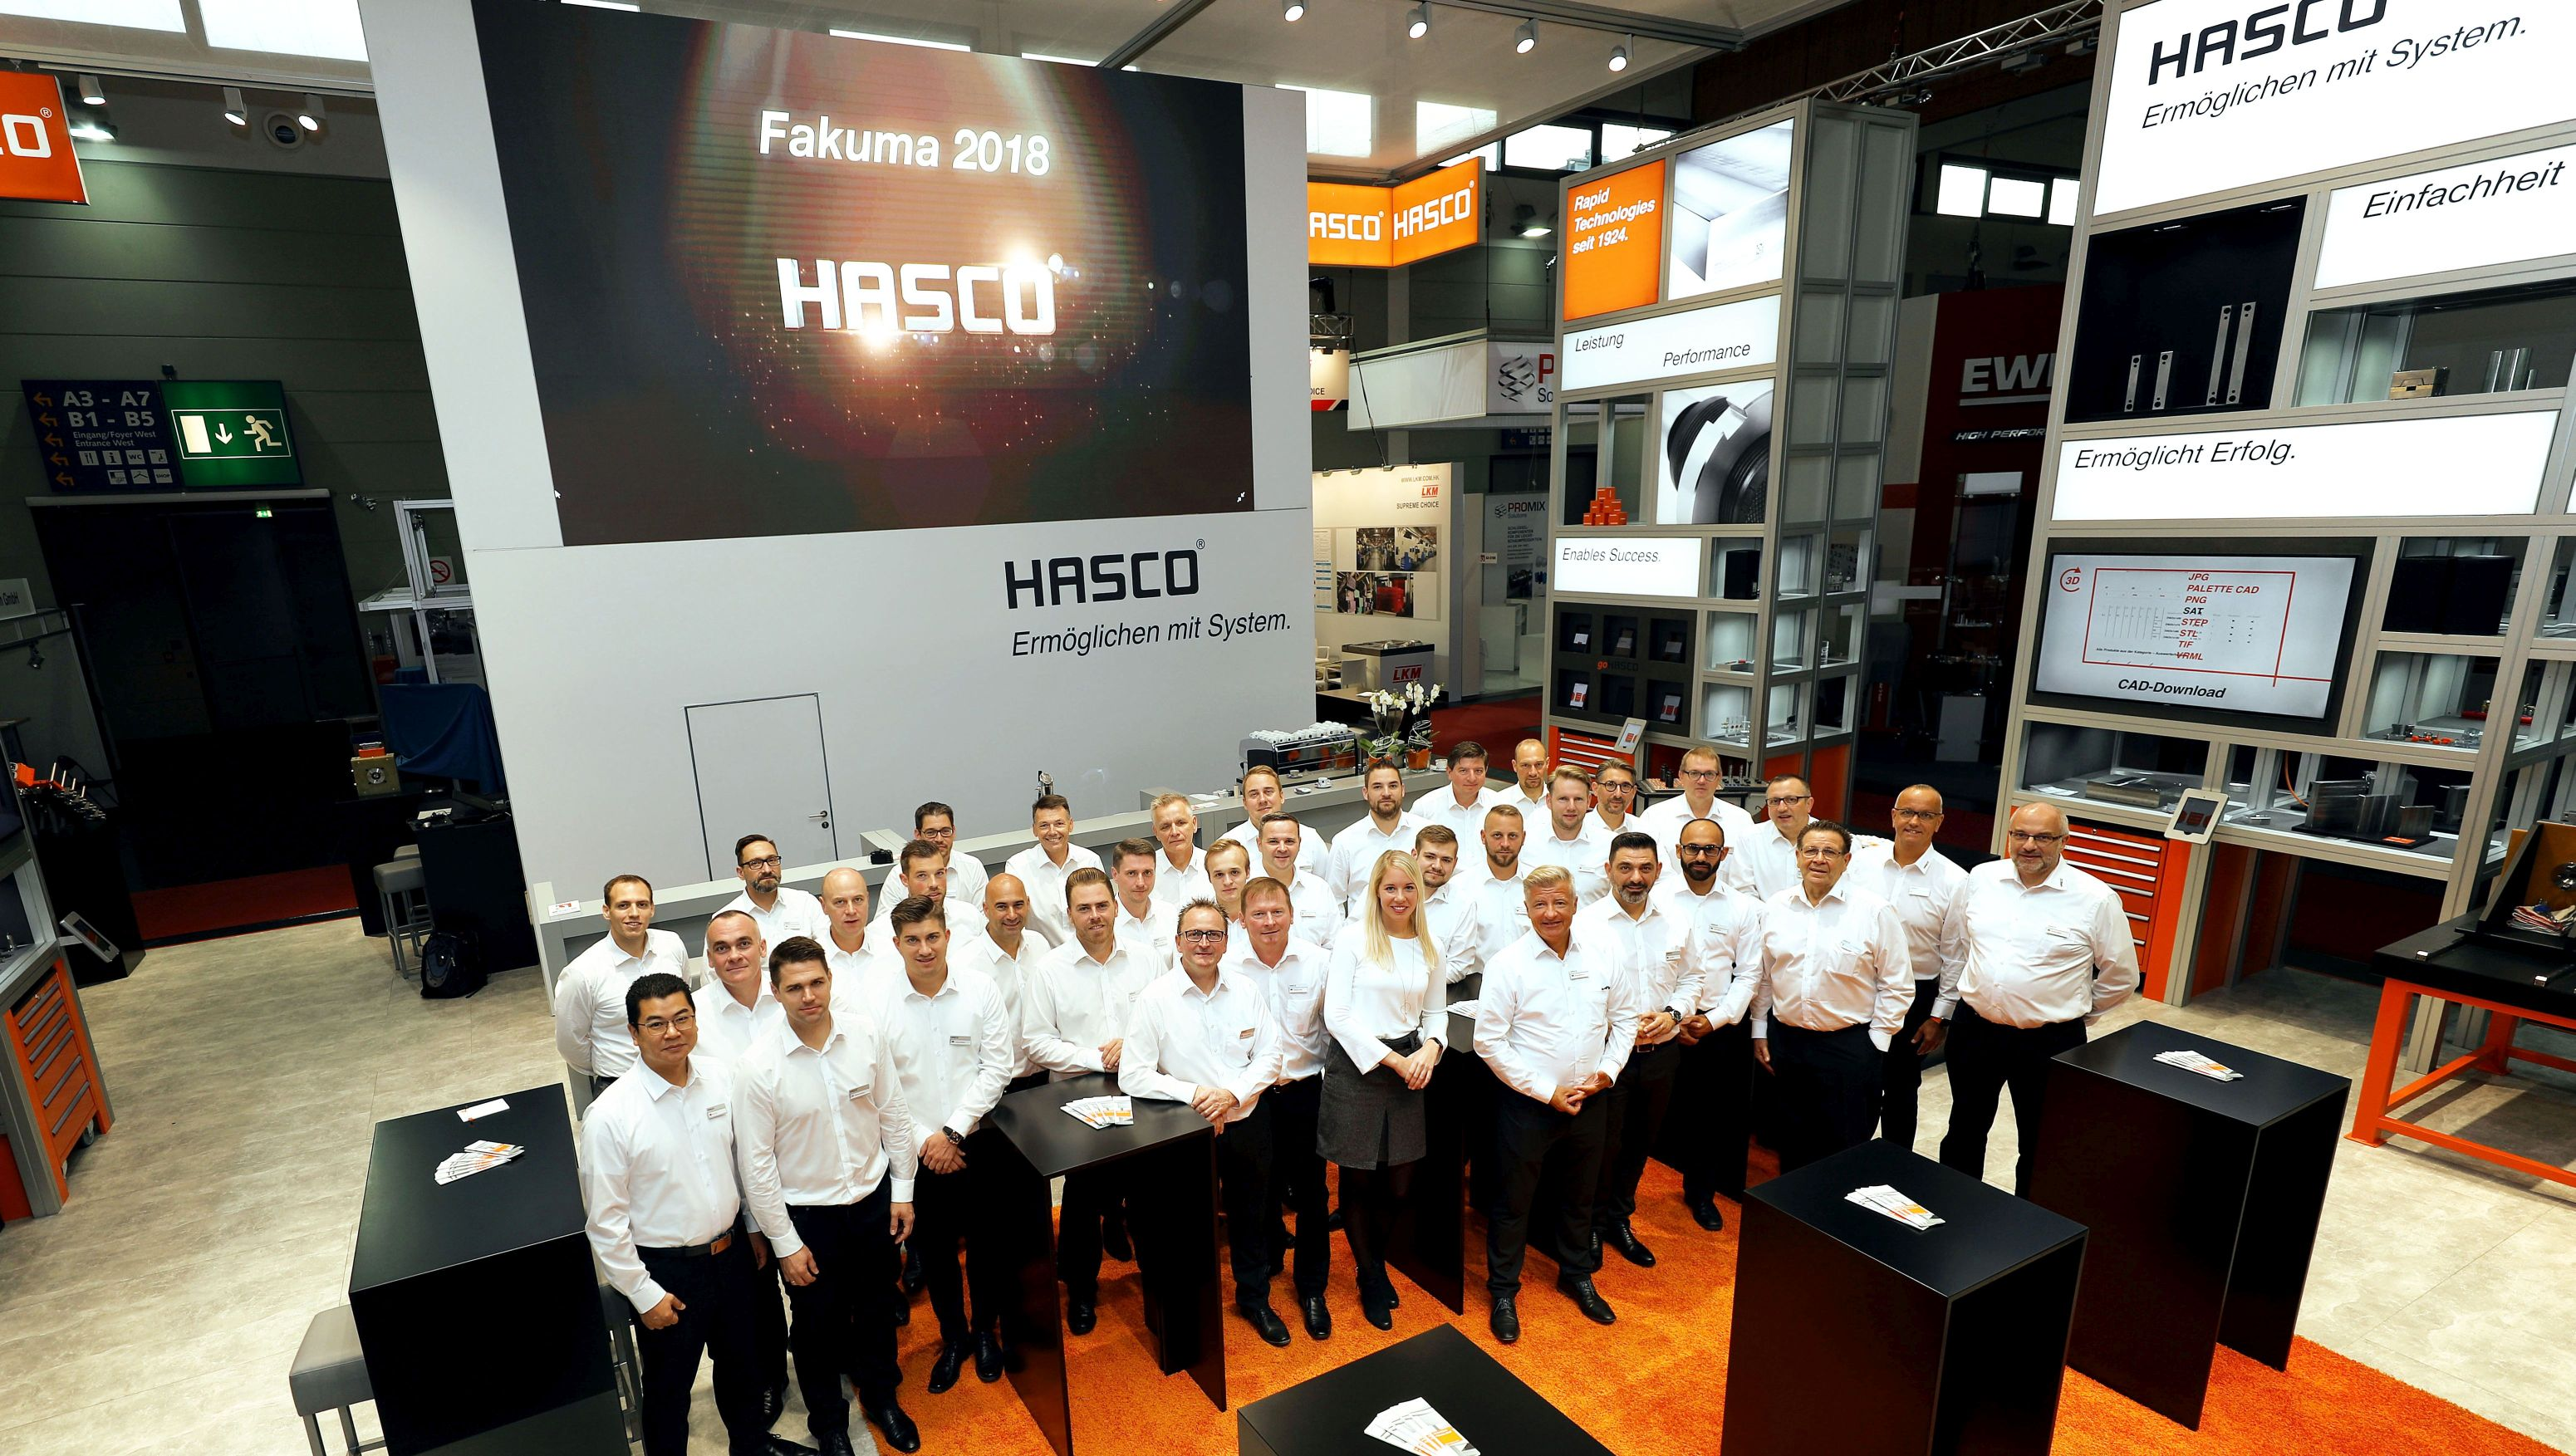 hasco_re_fakuma18.jpg